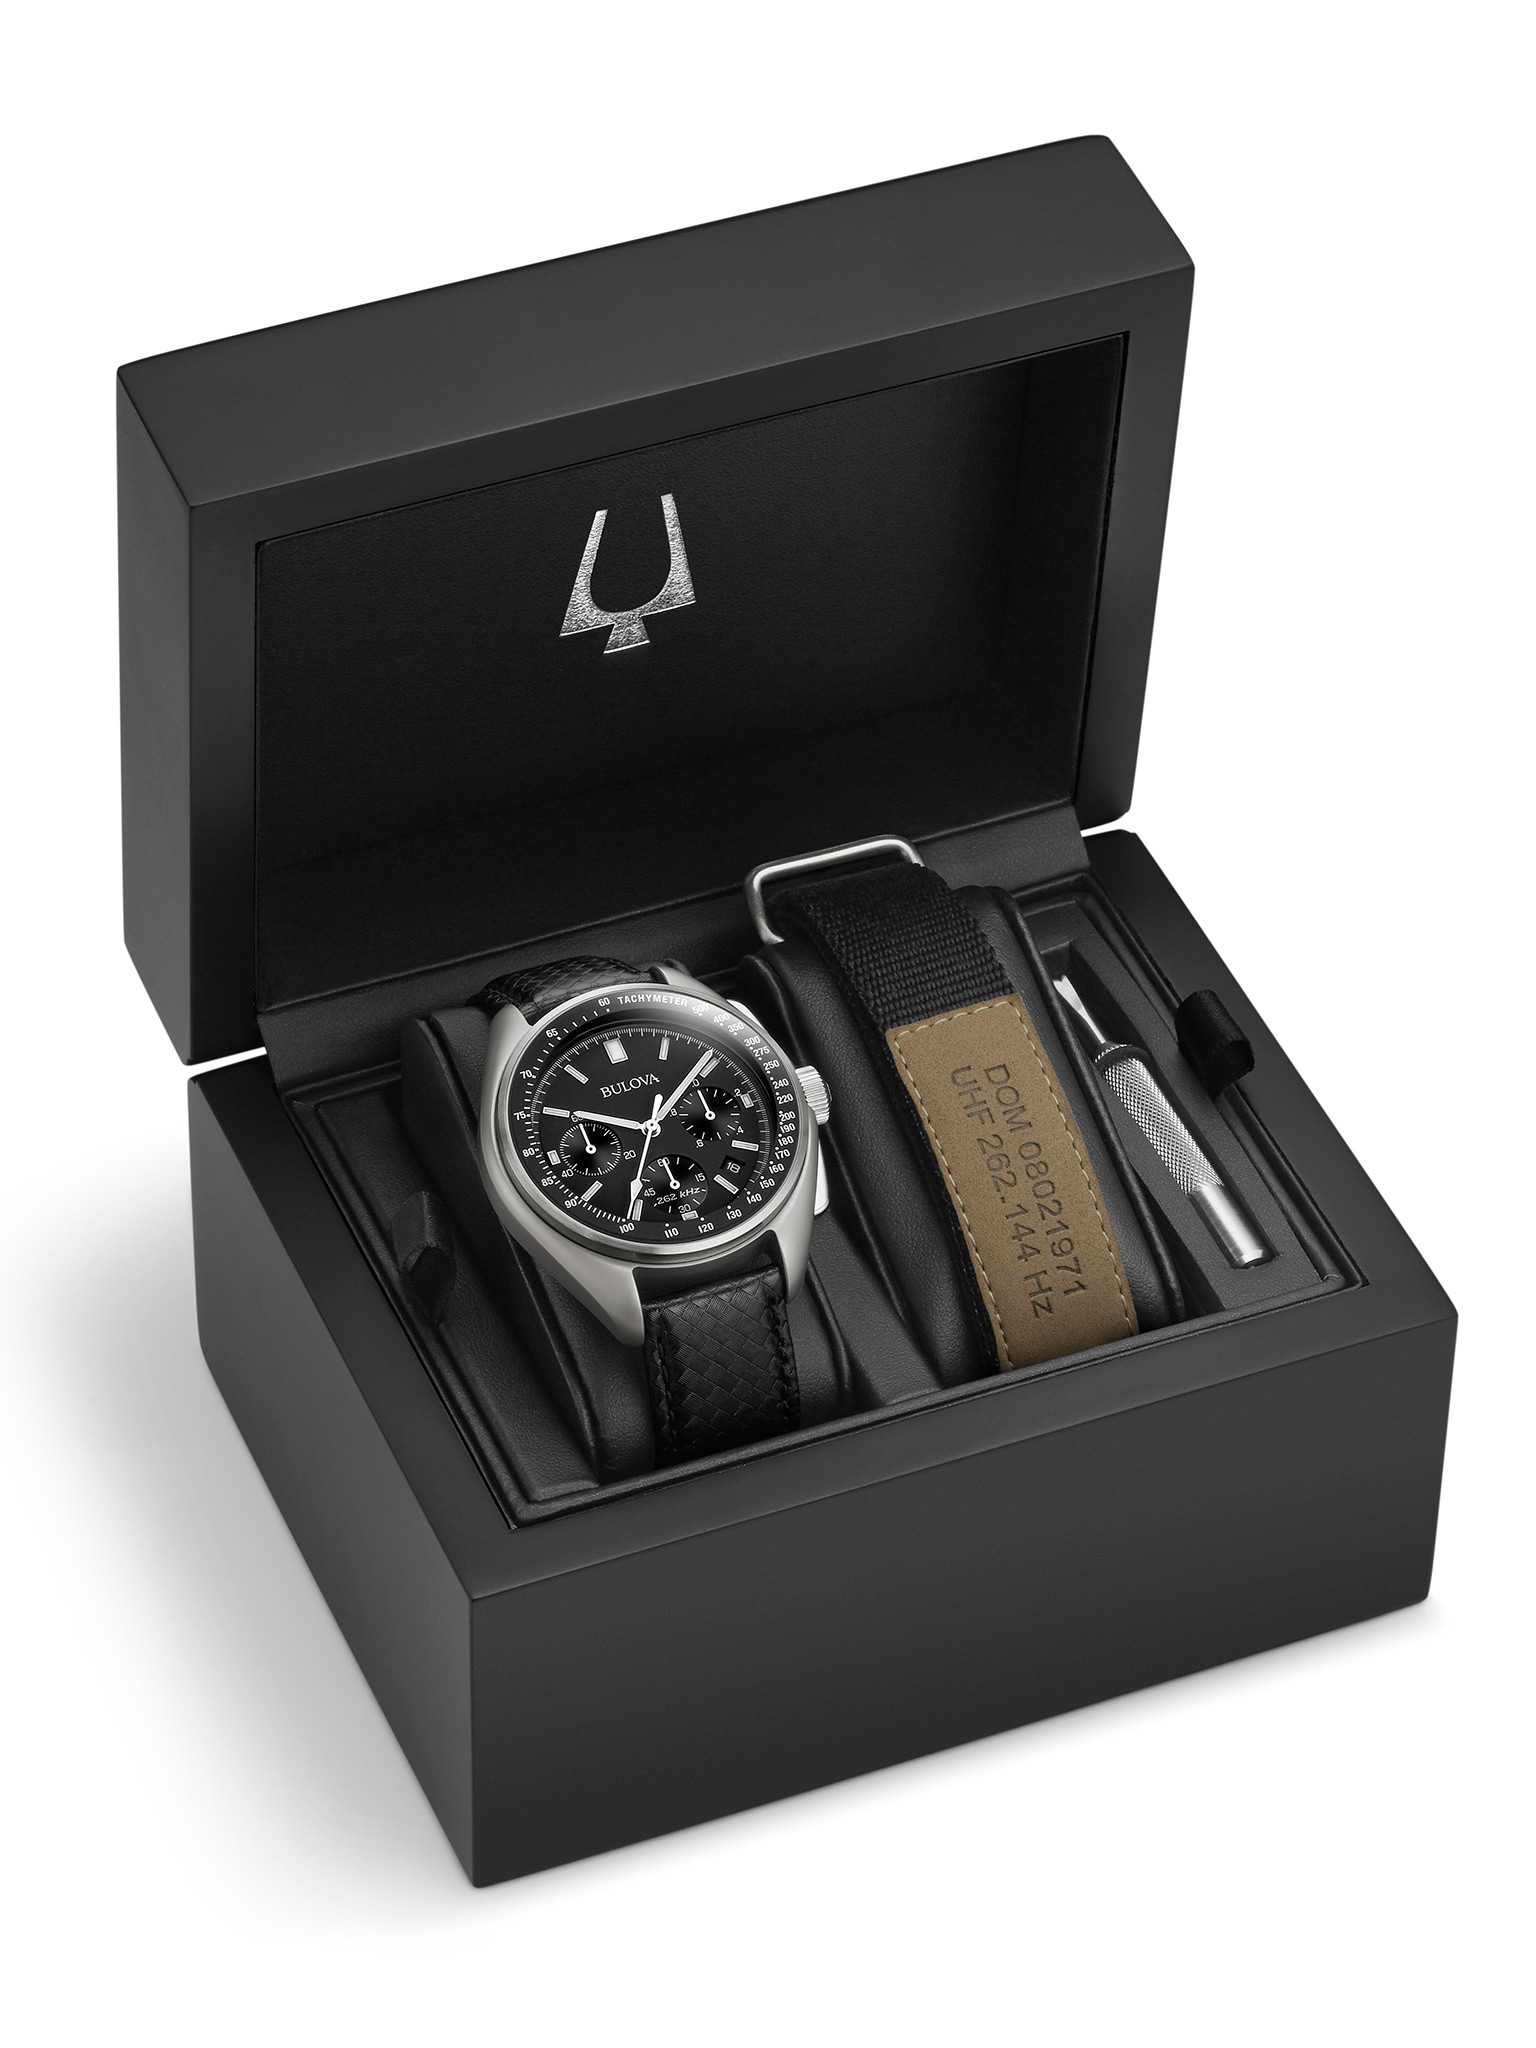 The Bulova 96B251 packaging